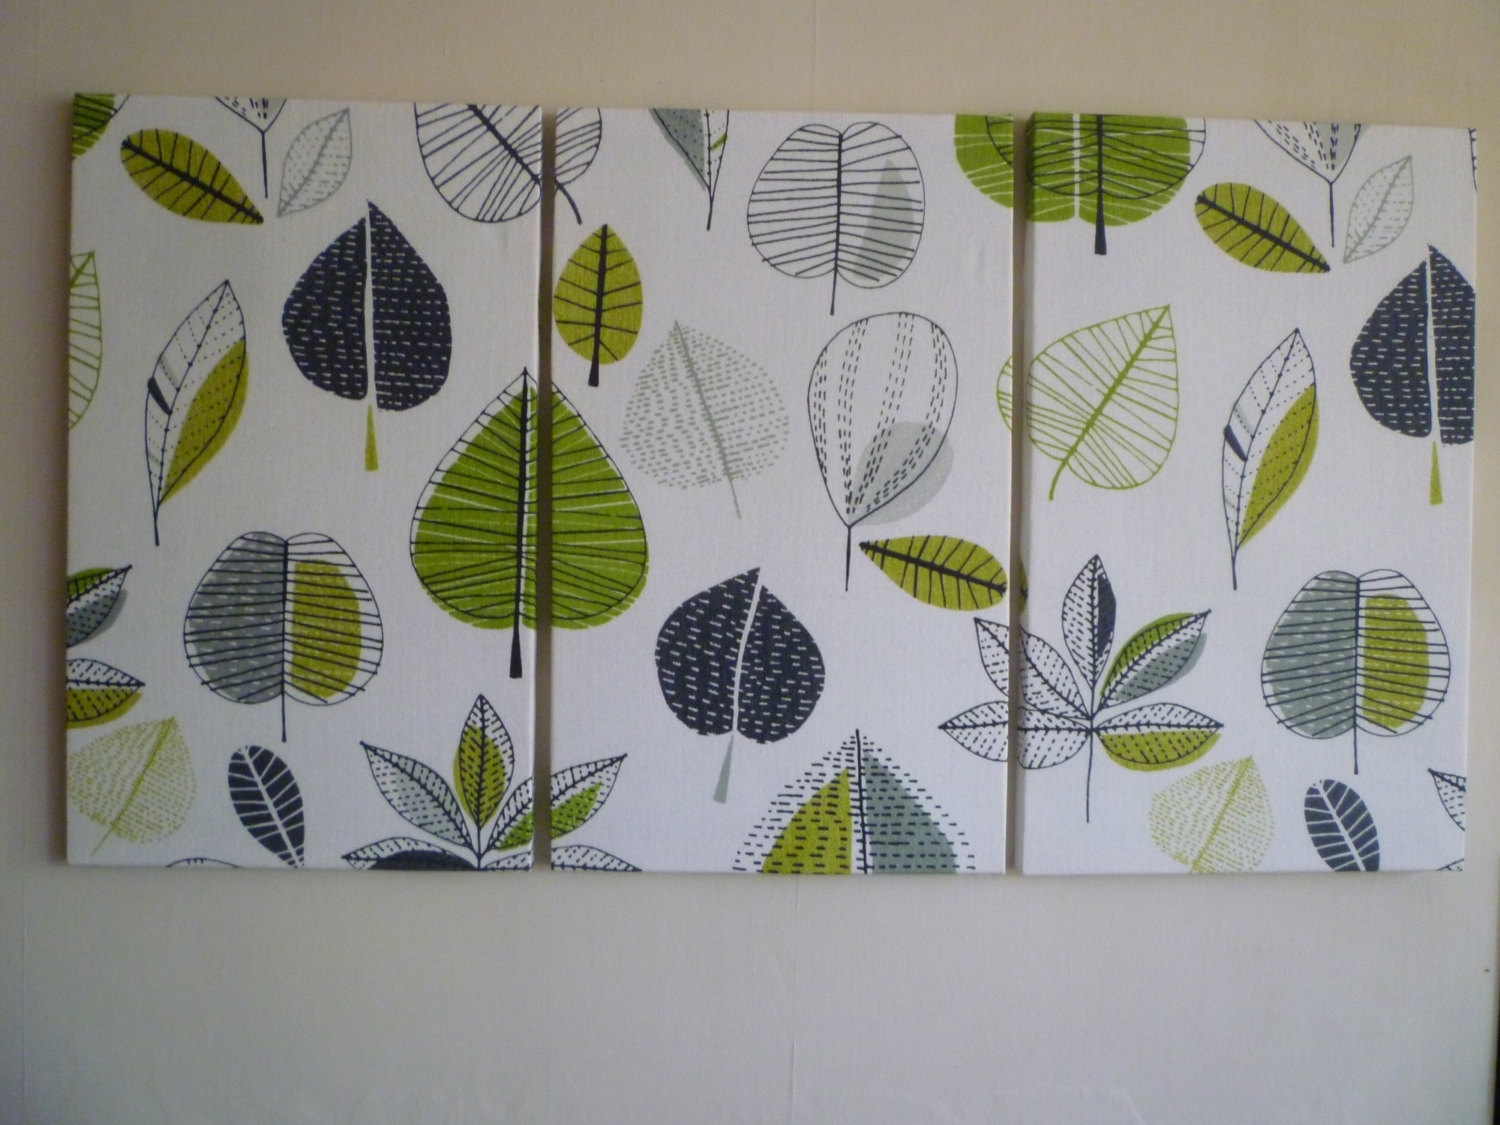 Wall Art Designs: Fabric Wall Art Big Lime Green Fabric Wall Art In Most Recent Contemporary Fabric Wall Art (View 12 of 15)